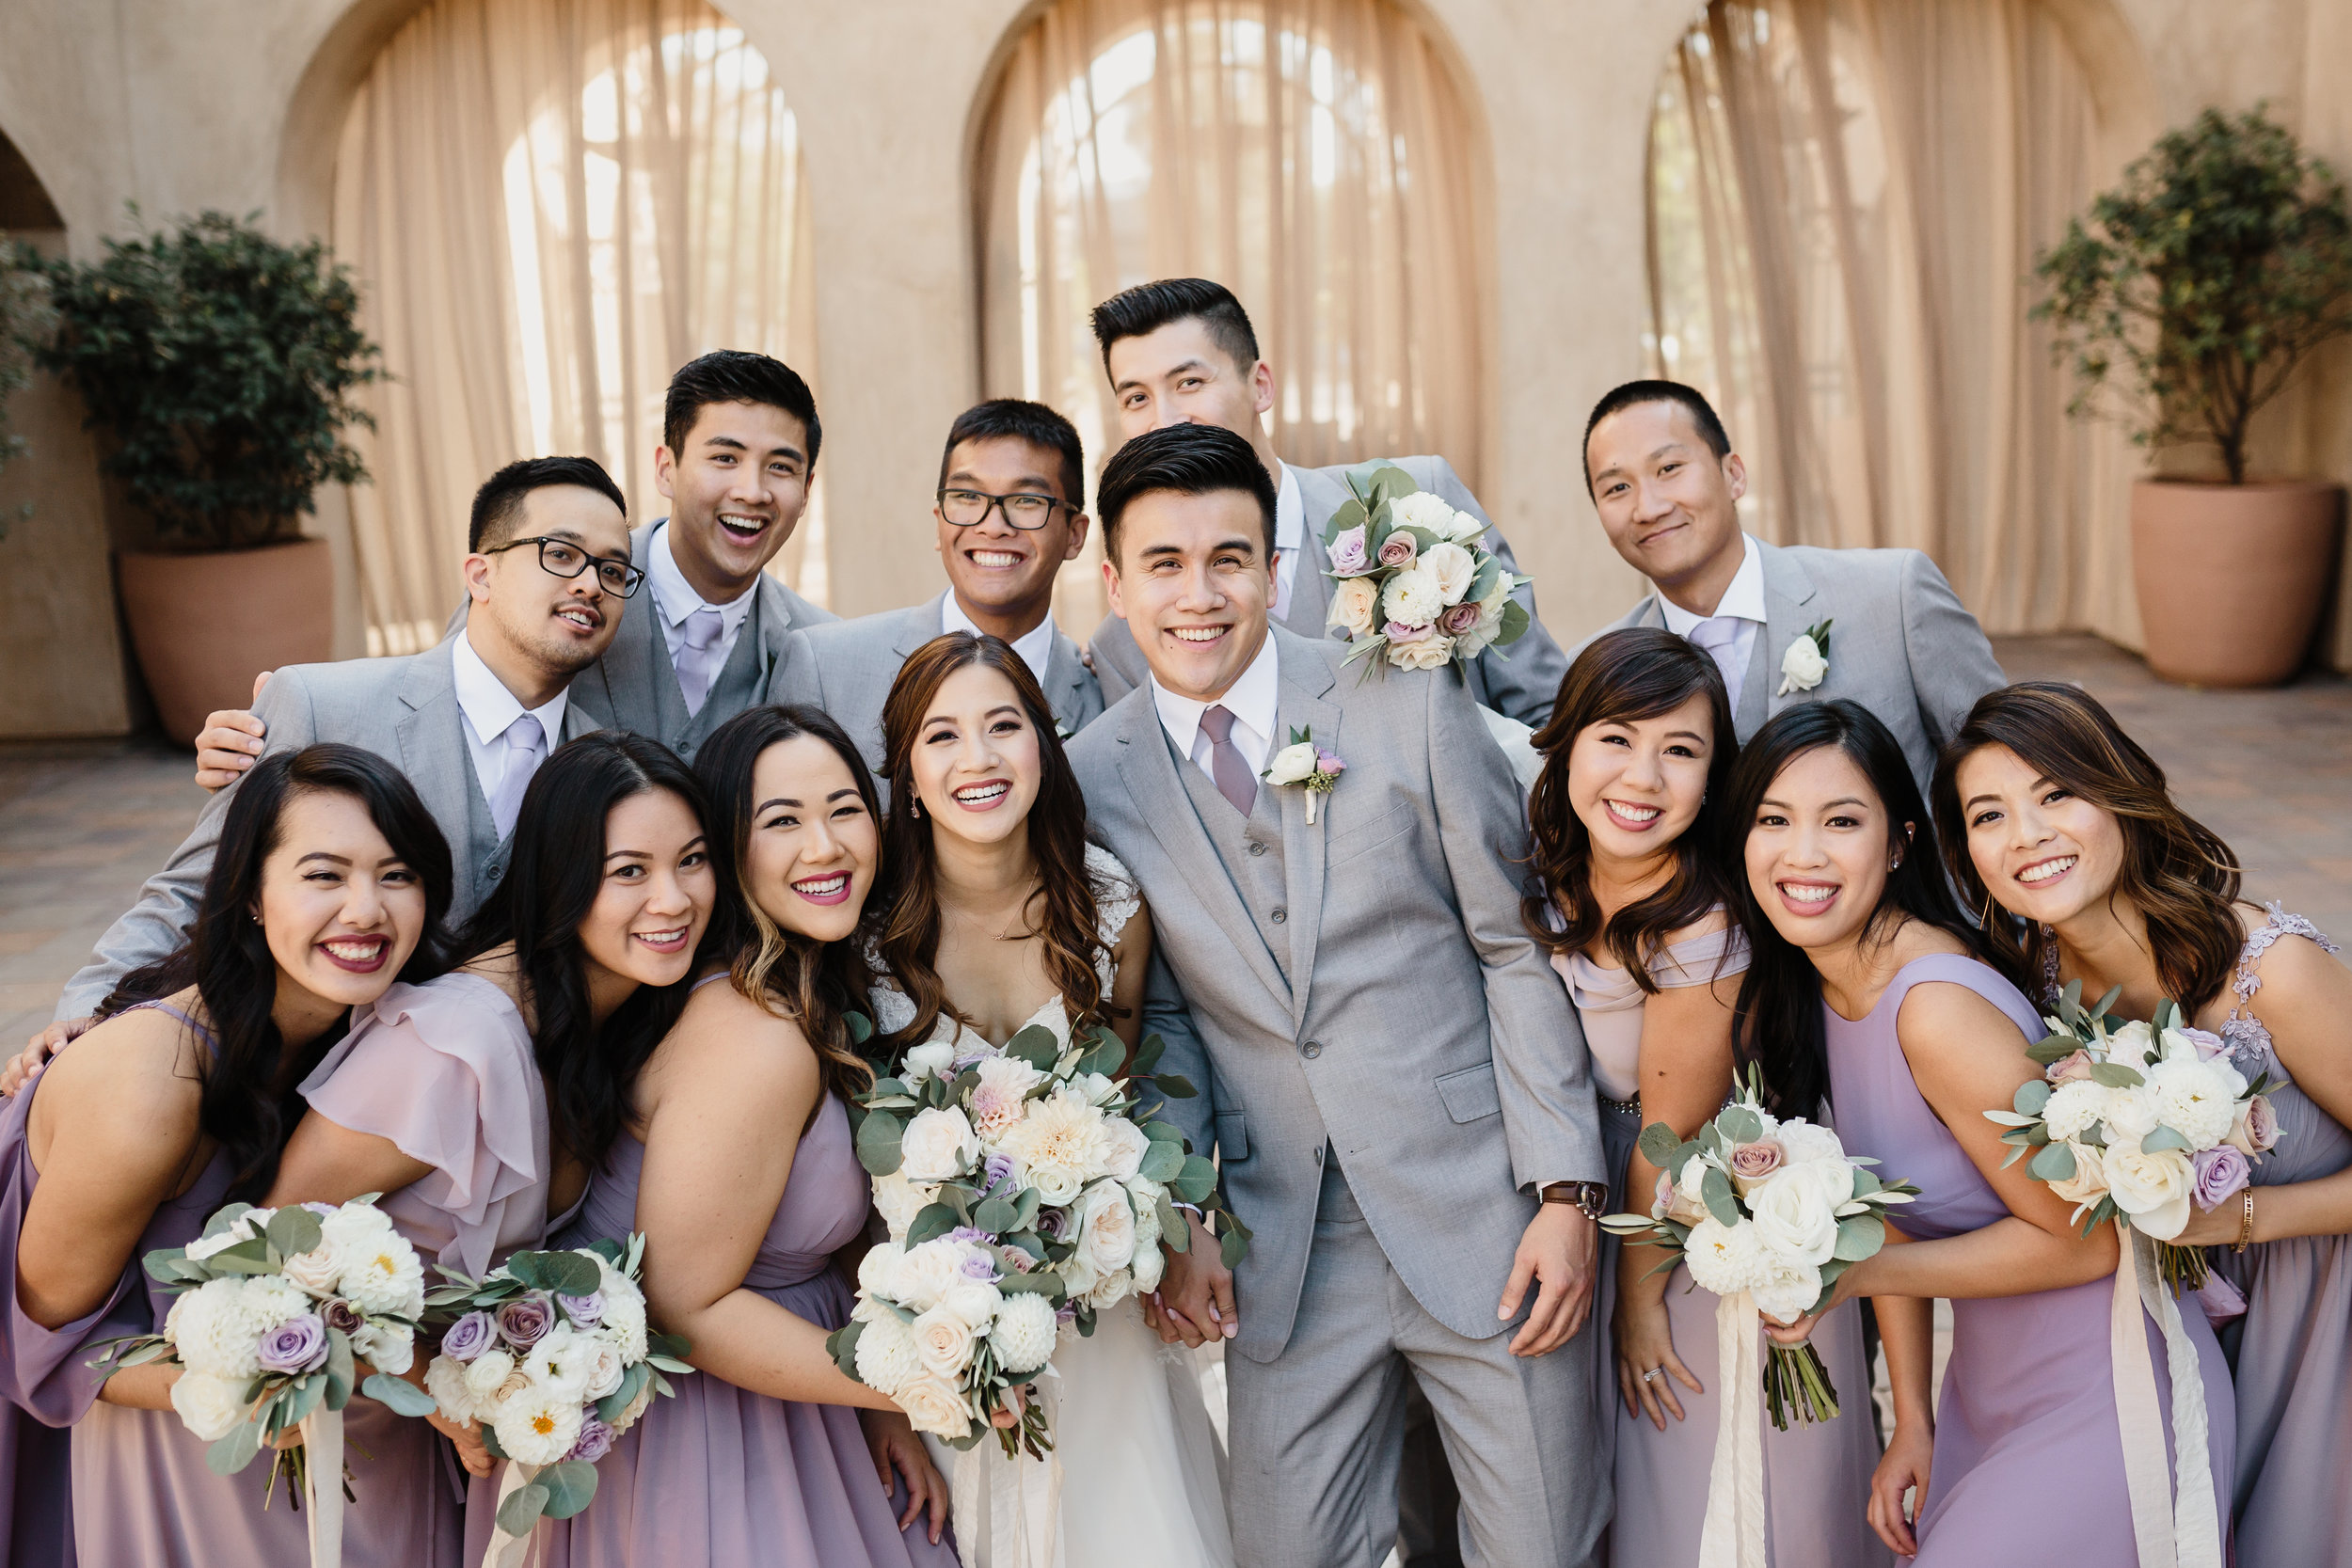 tangwedding-bridalparty_10.JPG